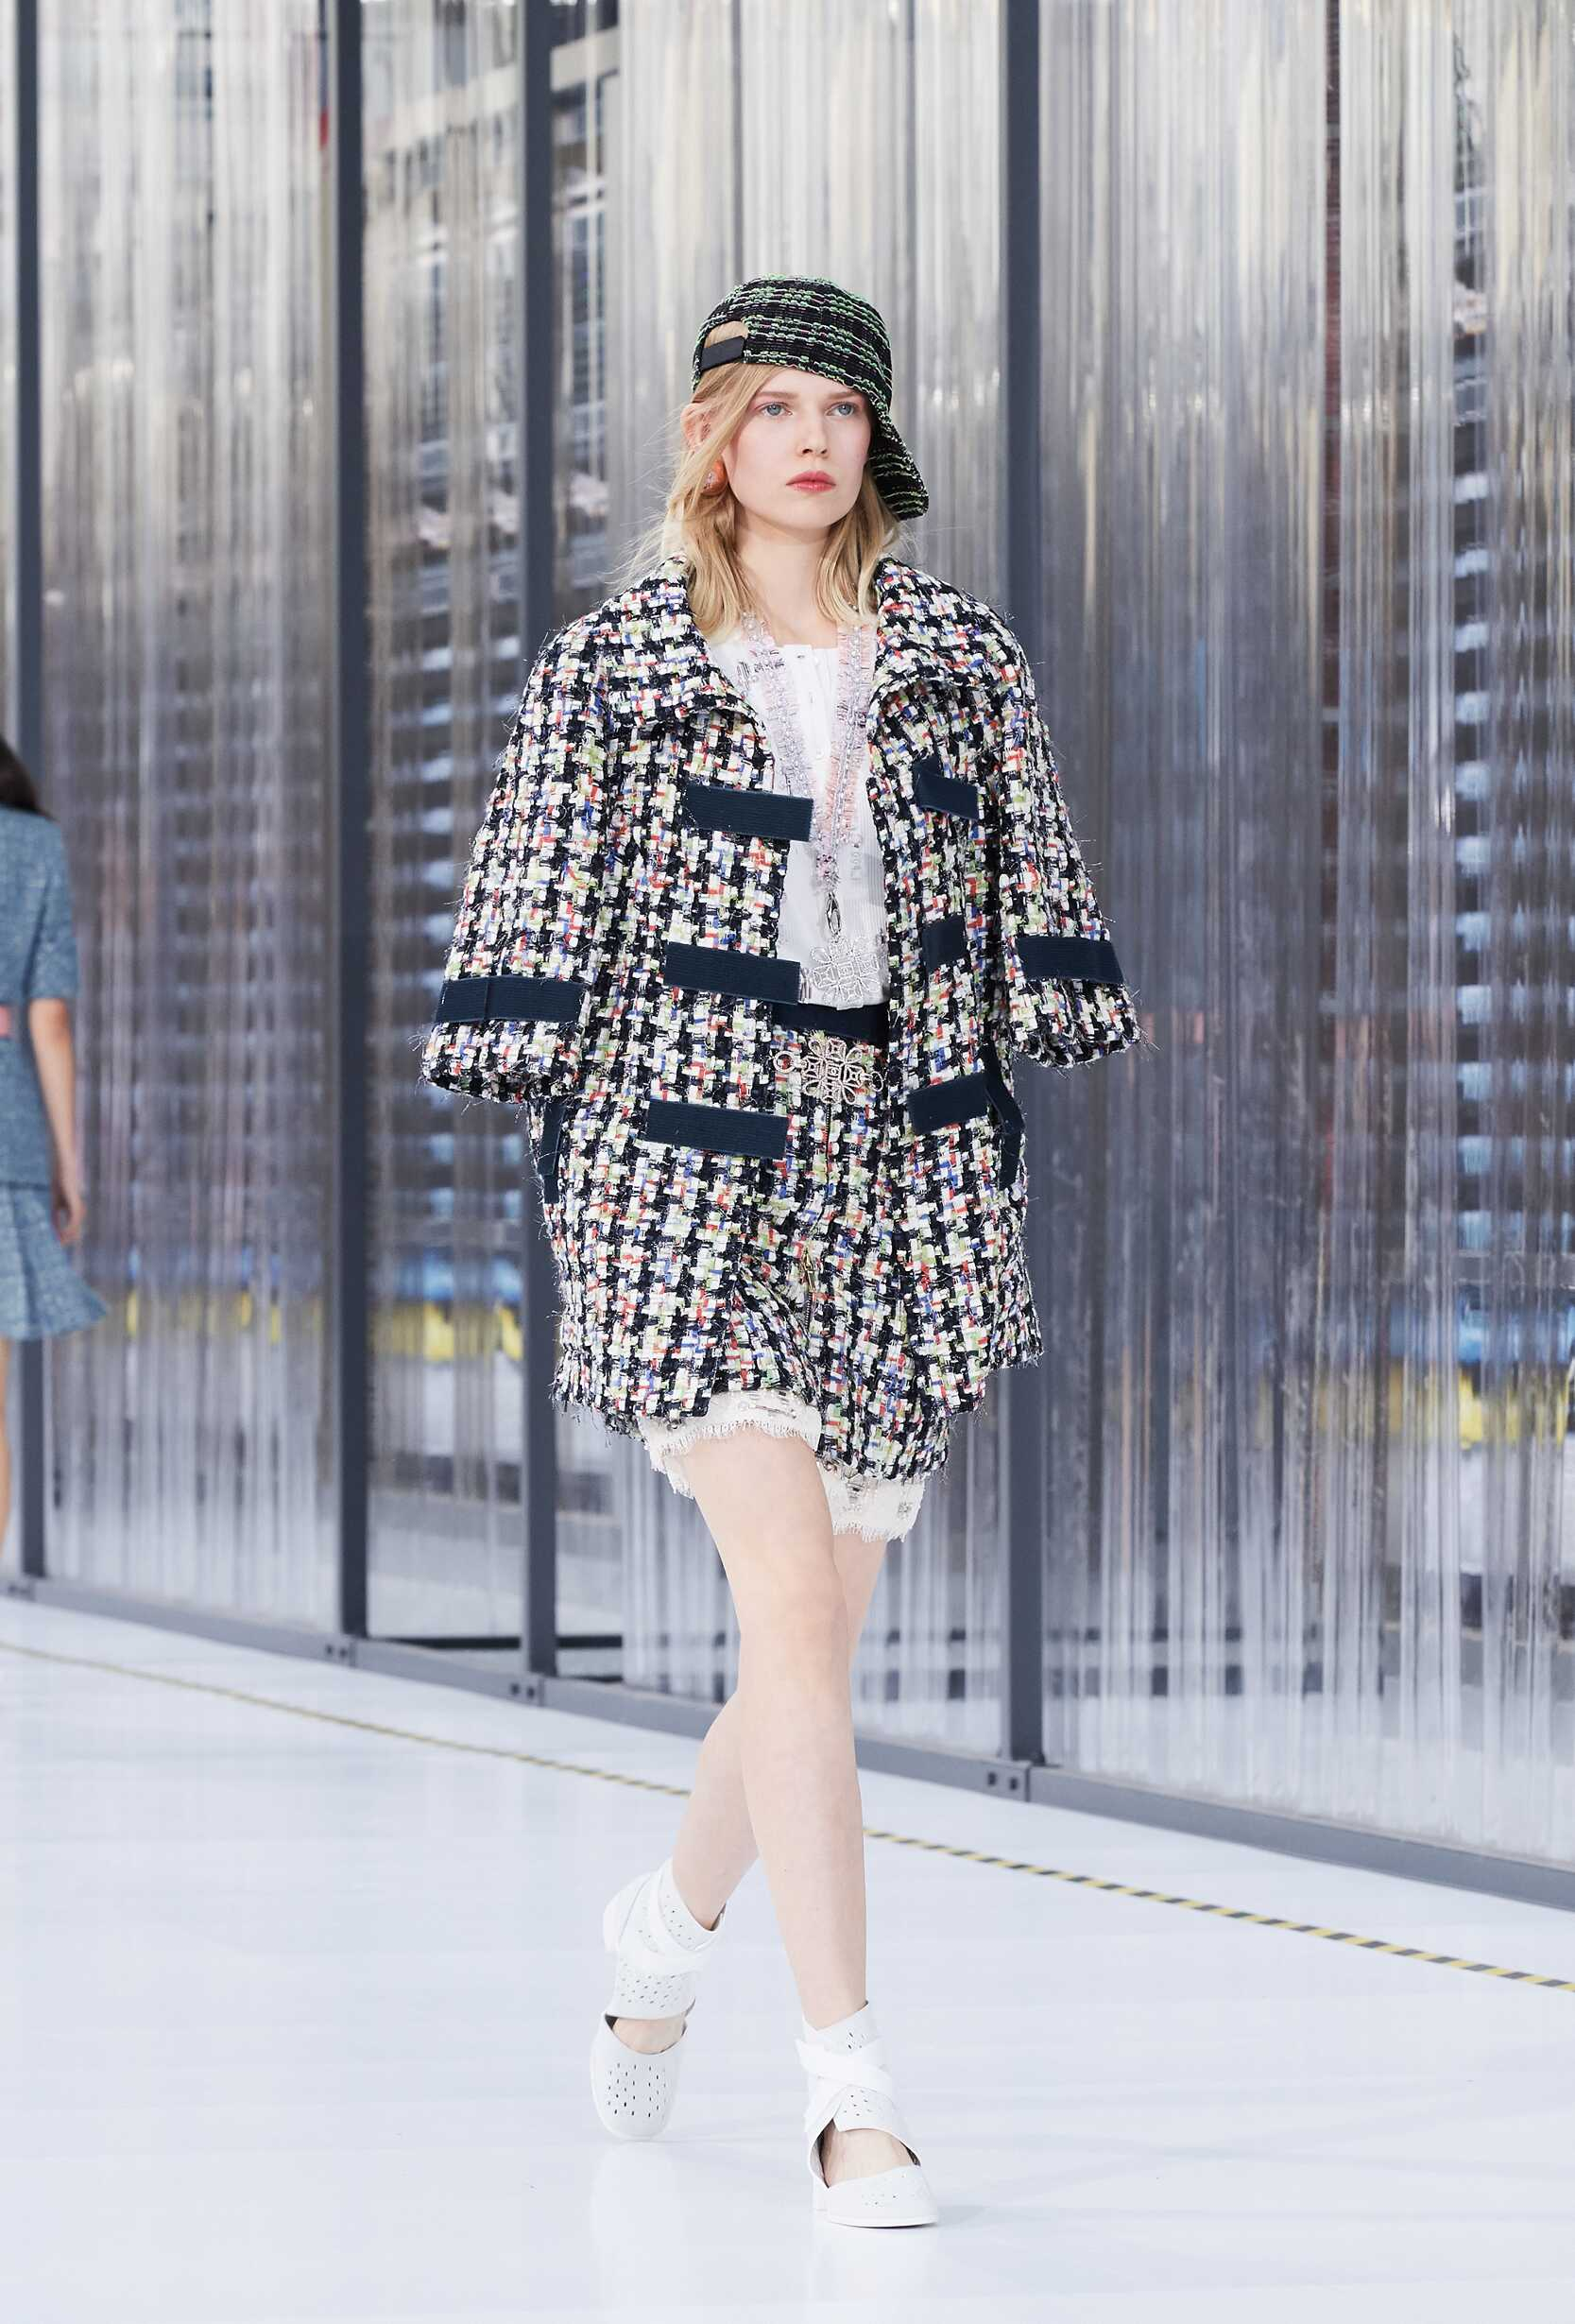 Fashion Woman Model Chanel Catwalk